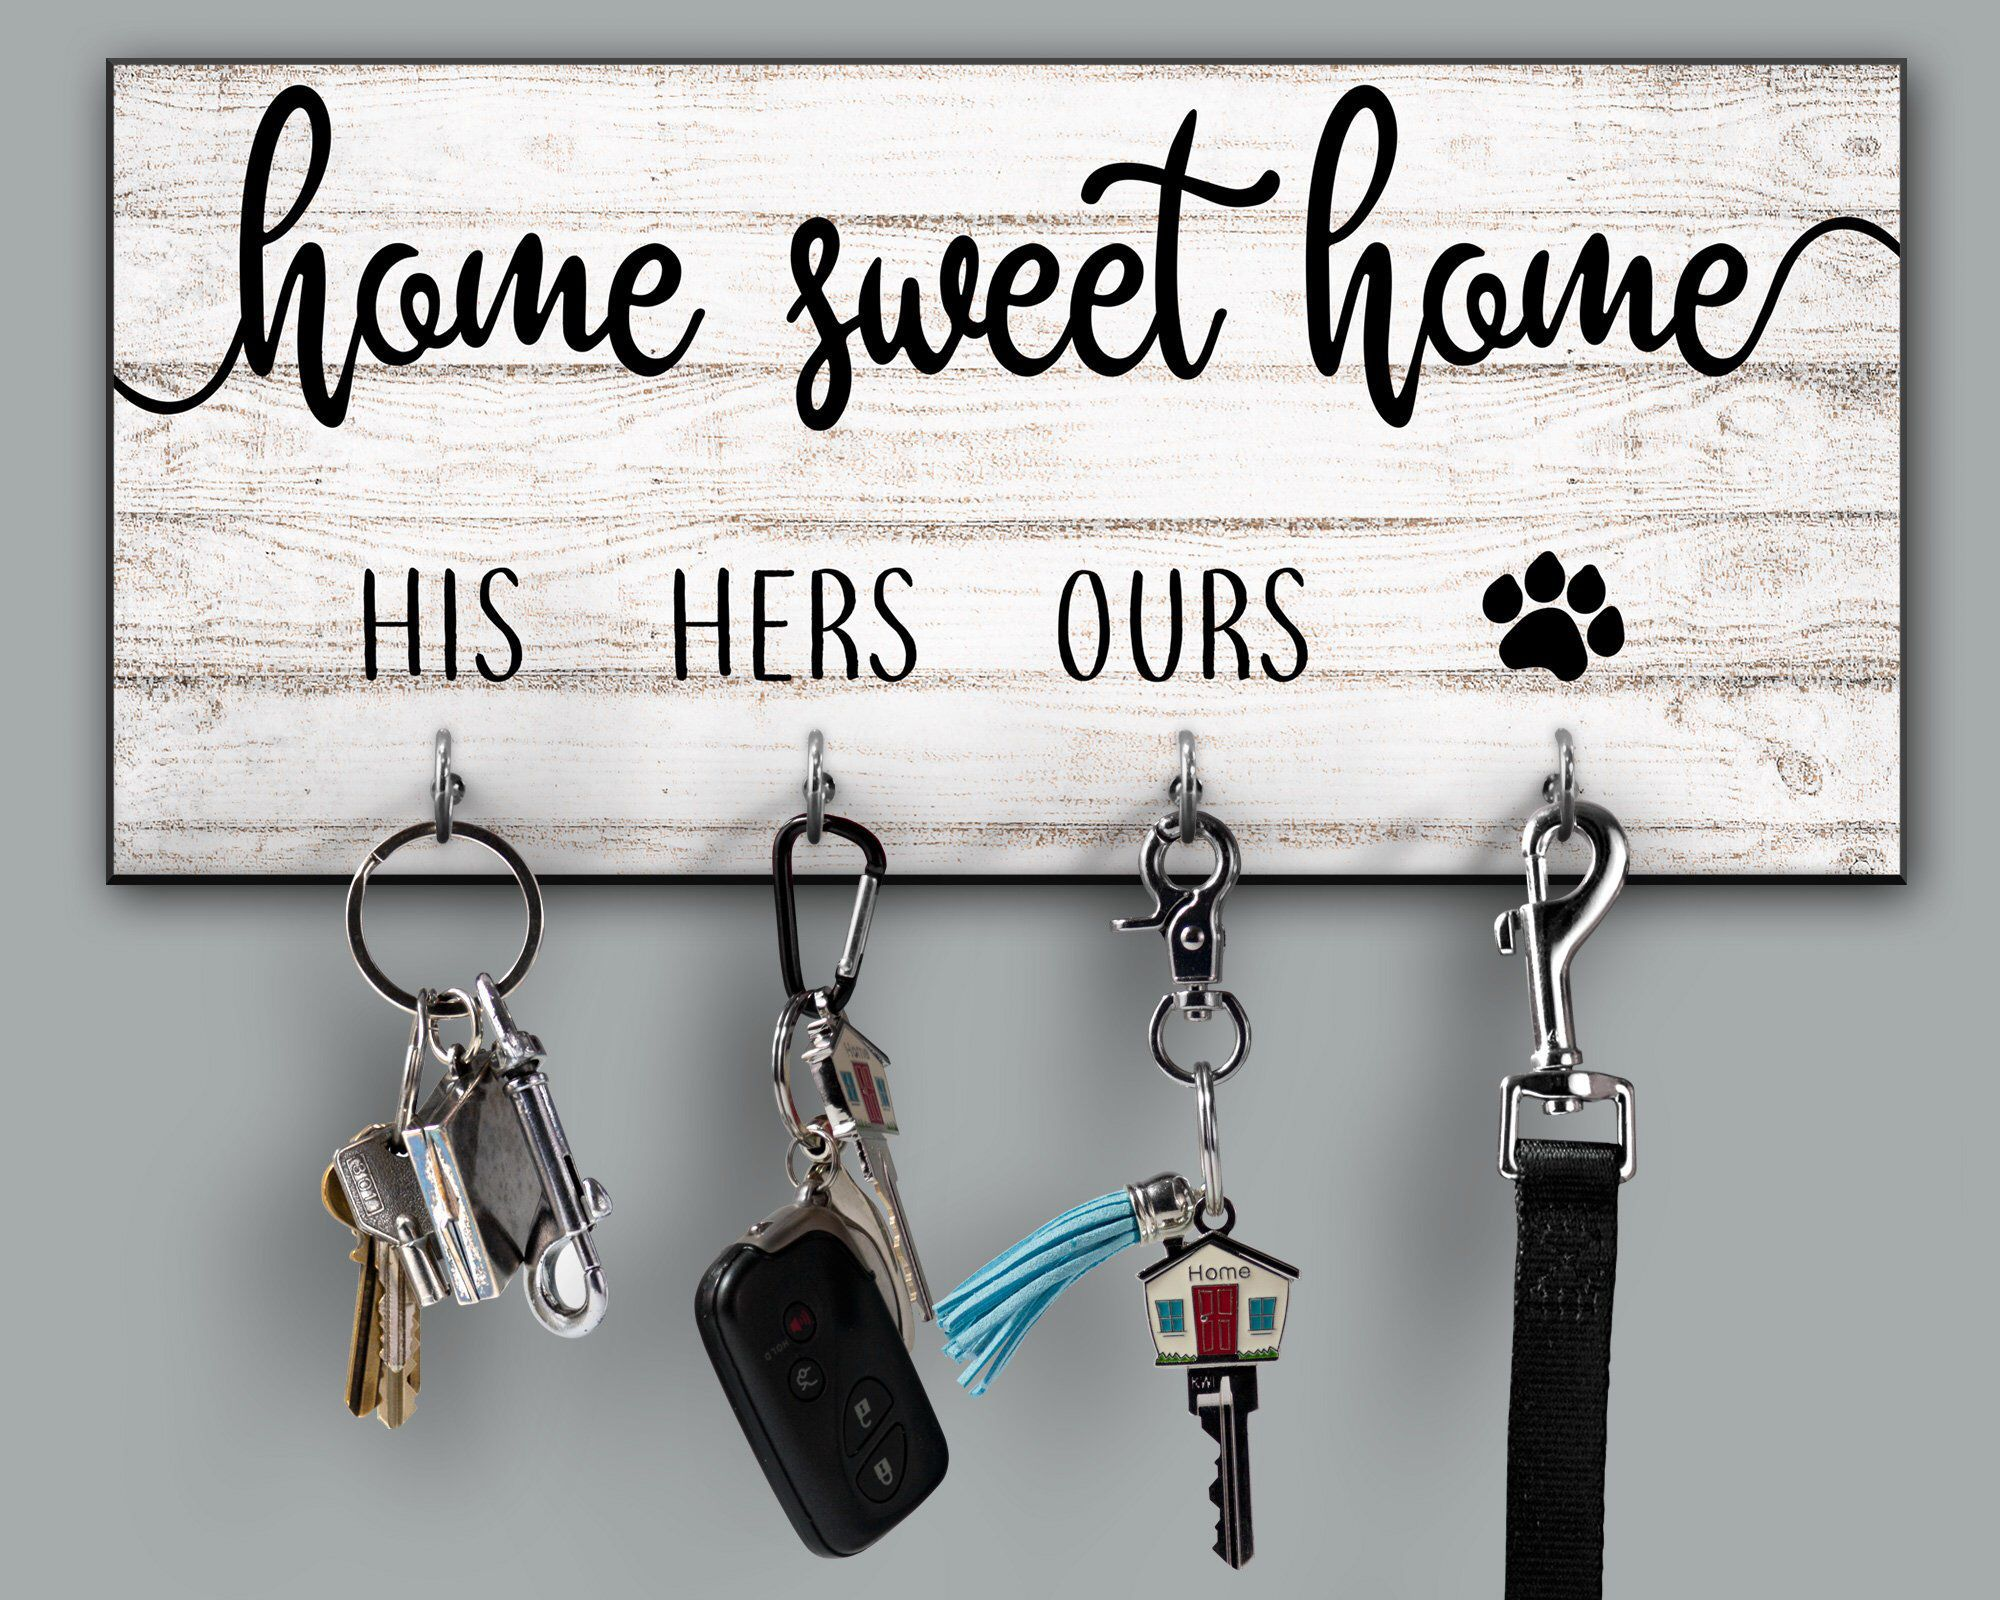 Home Sweet Home Personalized Key Holder Housewarming Gift Quote Key Holder His Hers Ours Dog Paw Family Name Key Rack Newlywed Gift In 2020 Key Rack Key Holder Diy House Warming Gifts